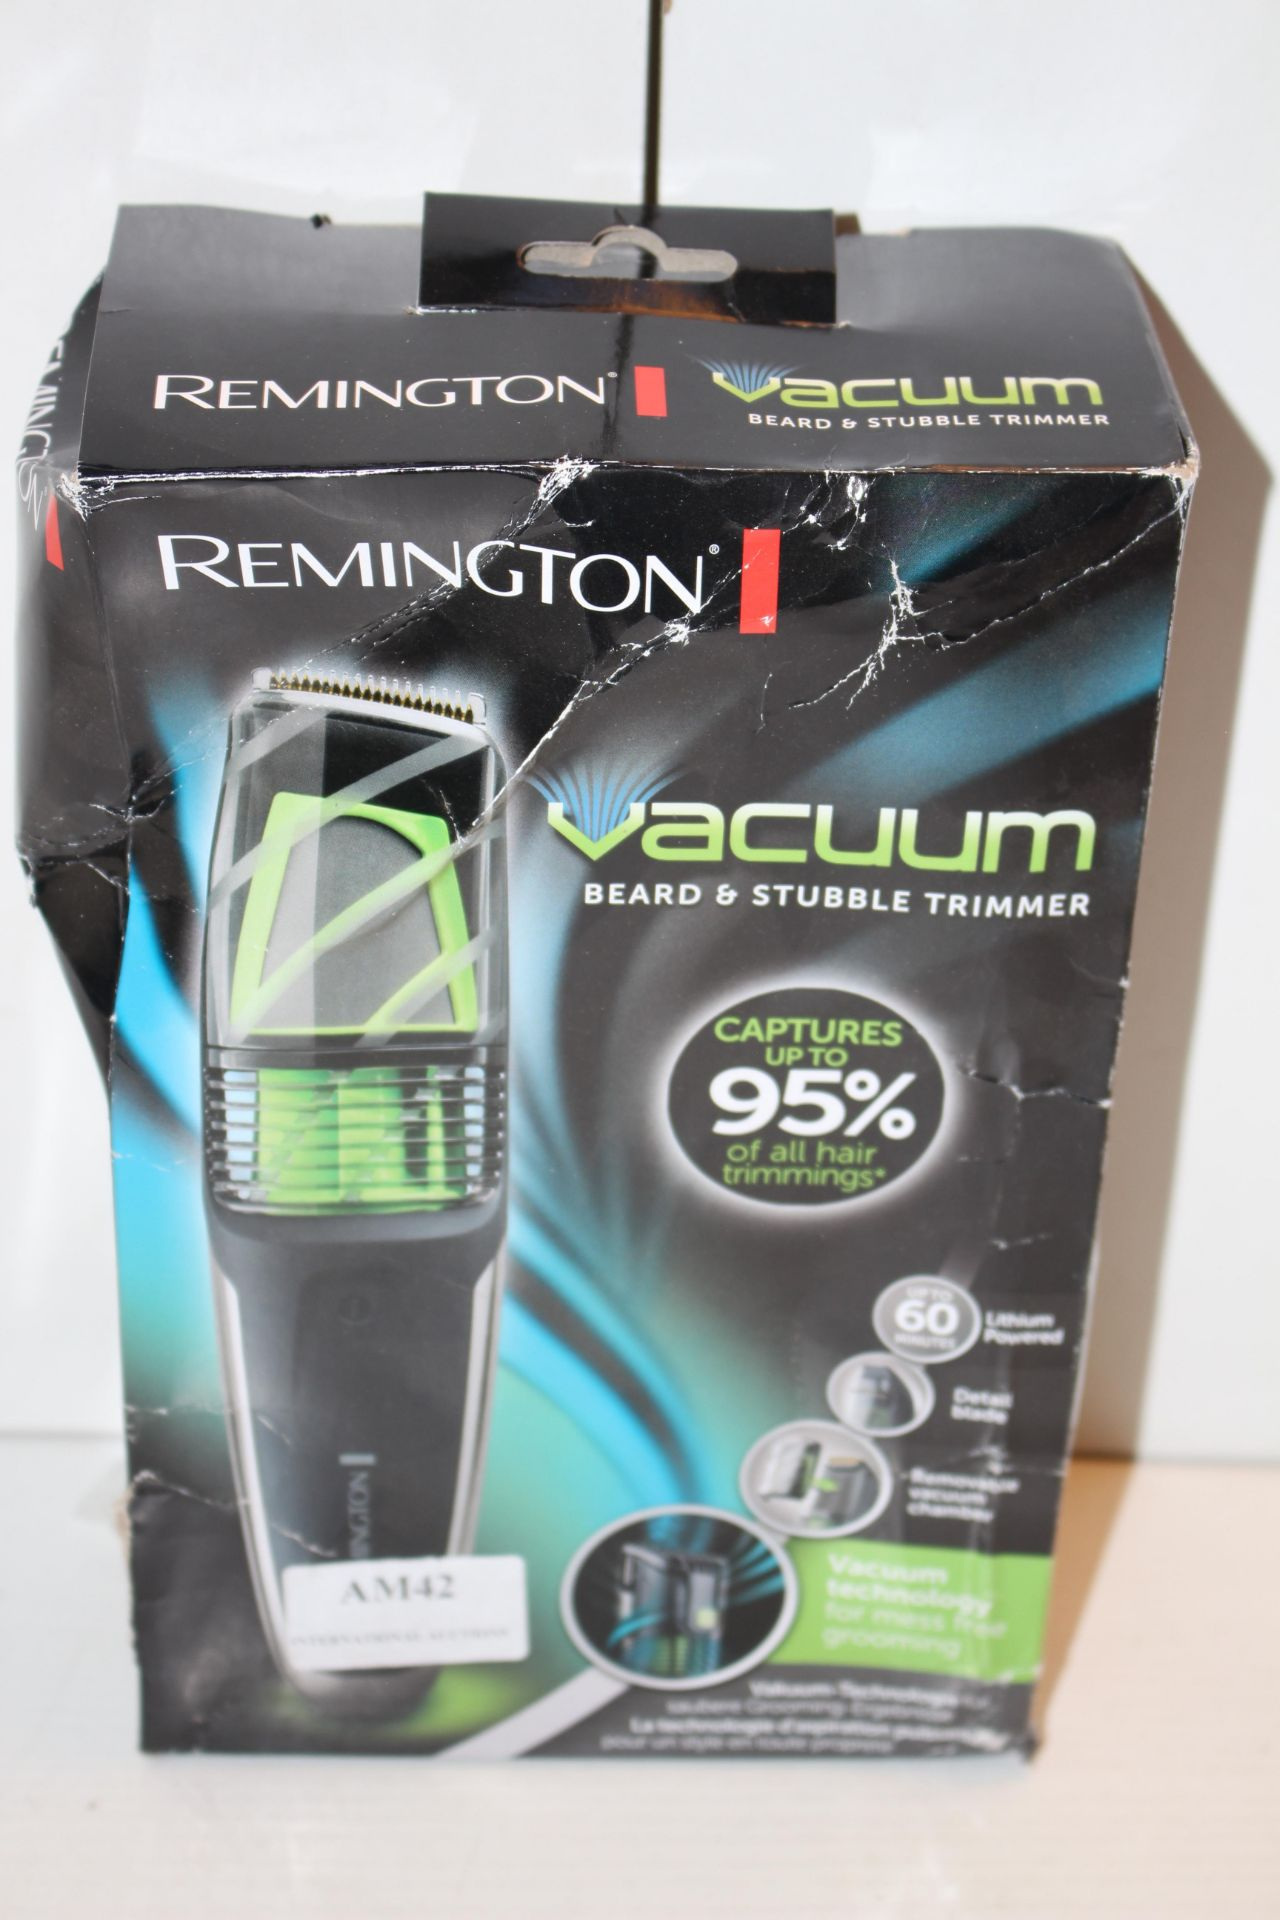 BOXED REMINGTON VACUUM BEARD AND STUBBLE TRIMMERCondition ReportAppraisal Available on Request-